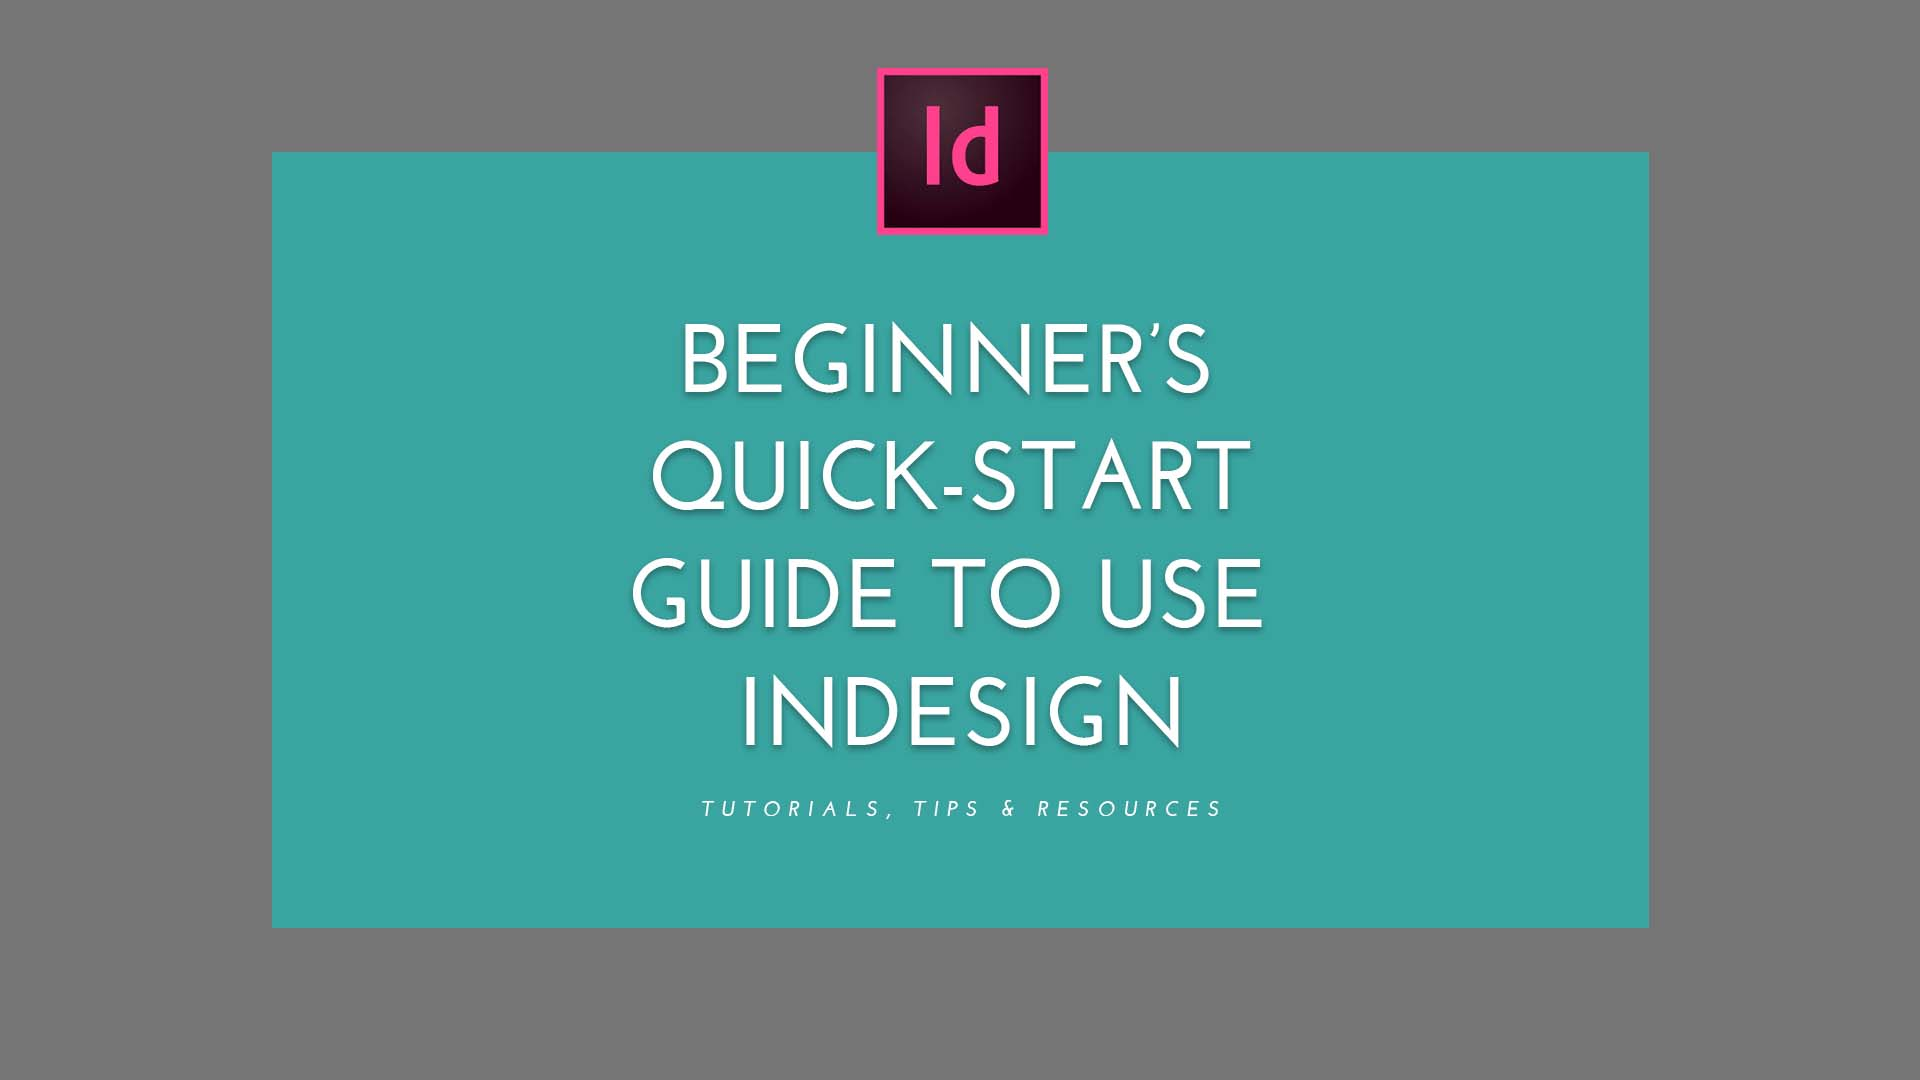 Beginner's Quick-Start Guide To Use InDesign